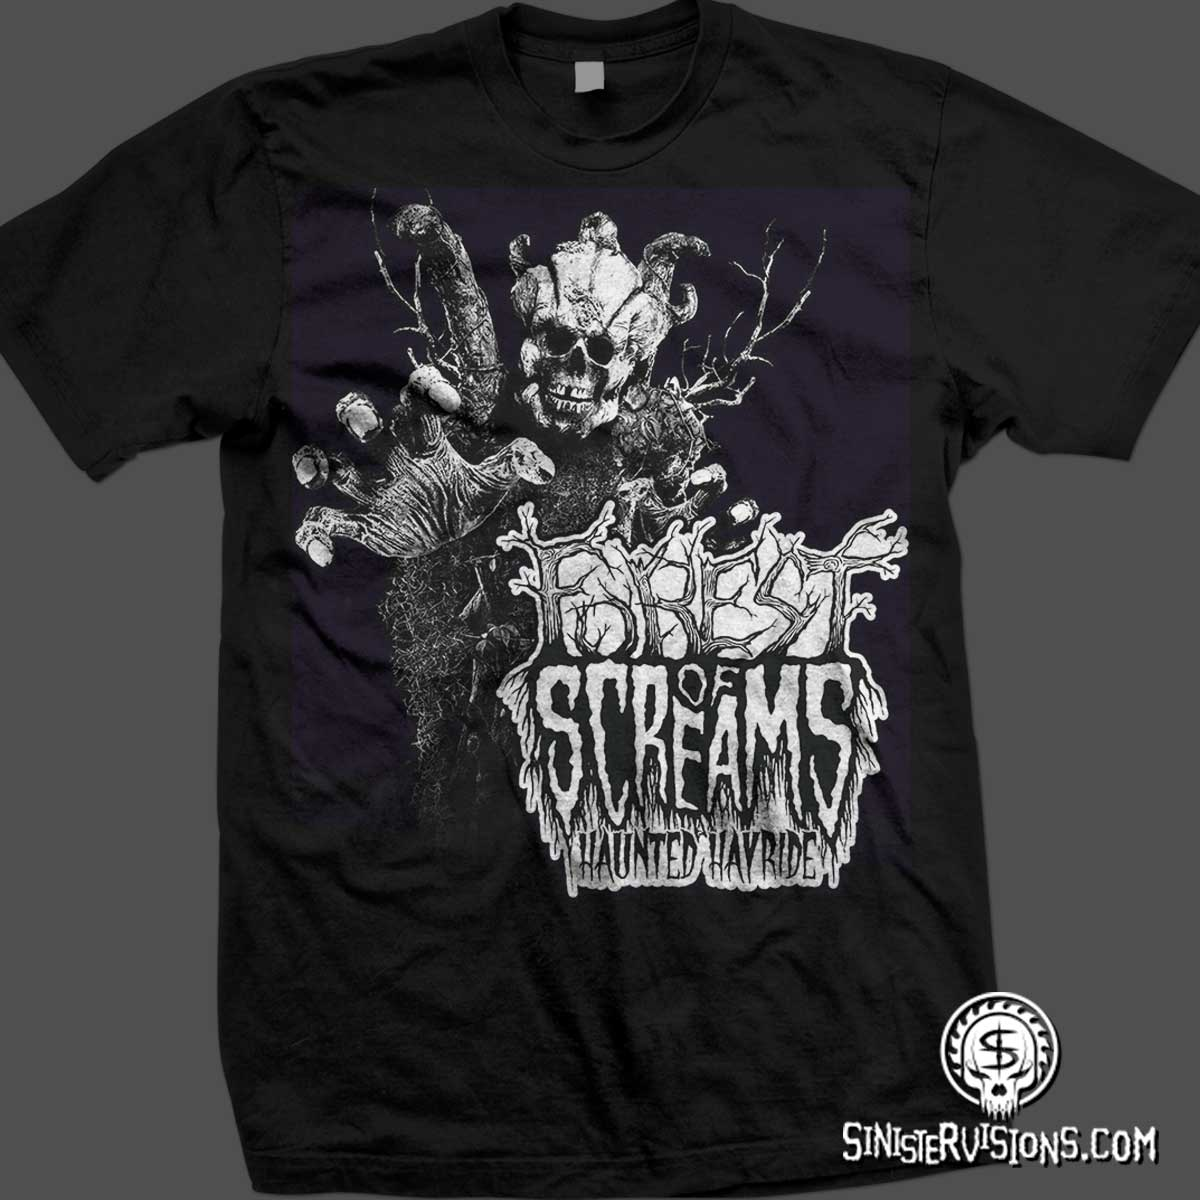 High T Shirt Designs   Sinister Visions T Shirt Design For Haunted Houses Haunted